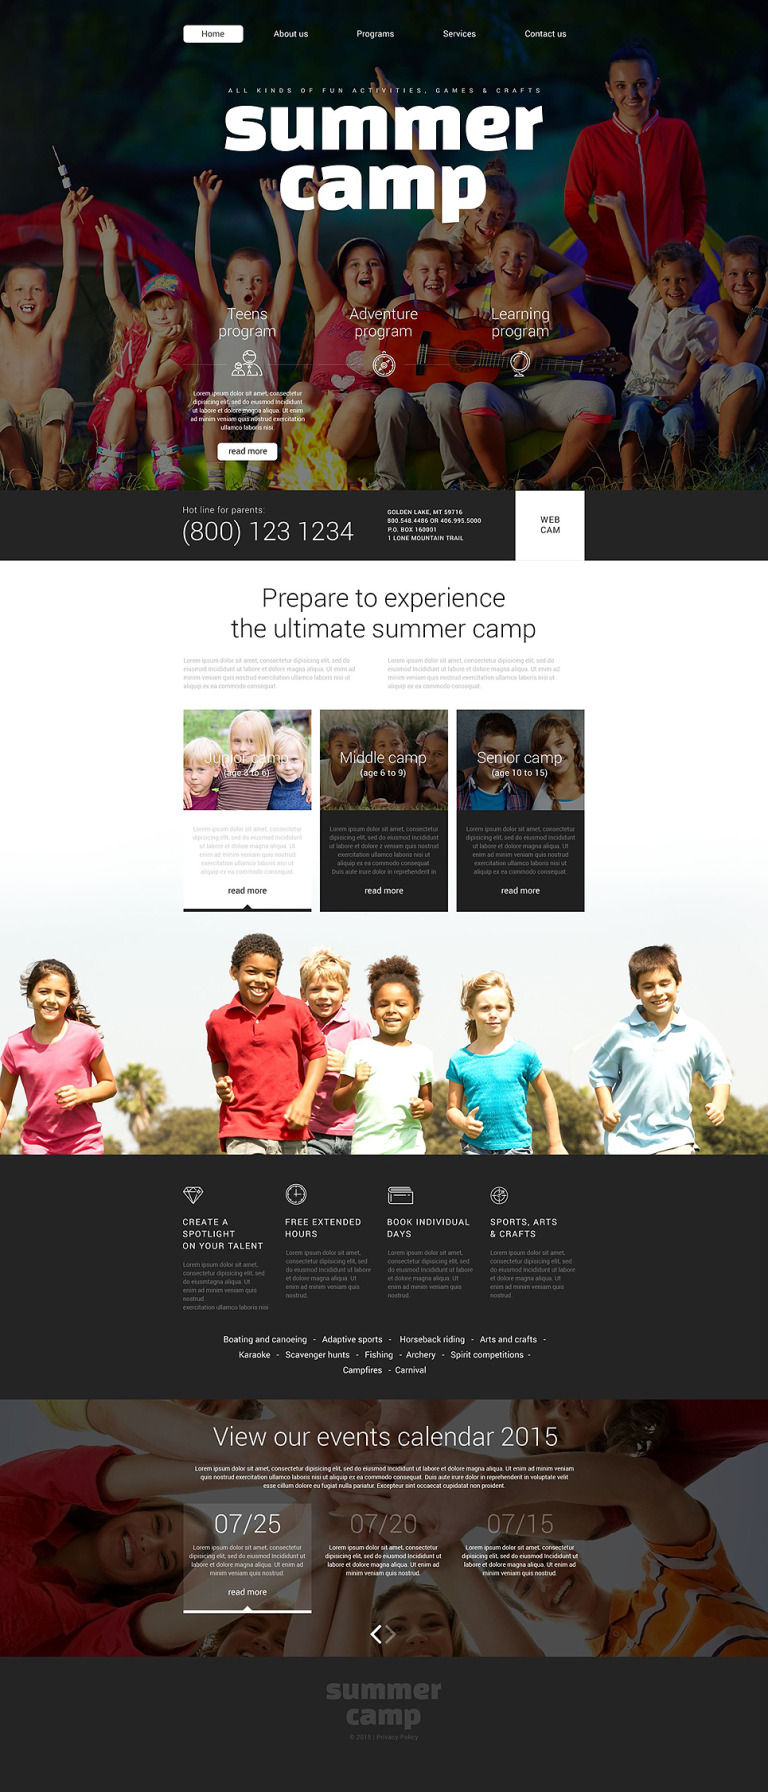 Summer Camp Website Template New Screenshots BIG